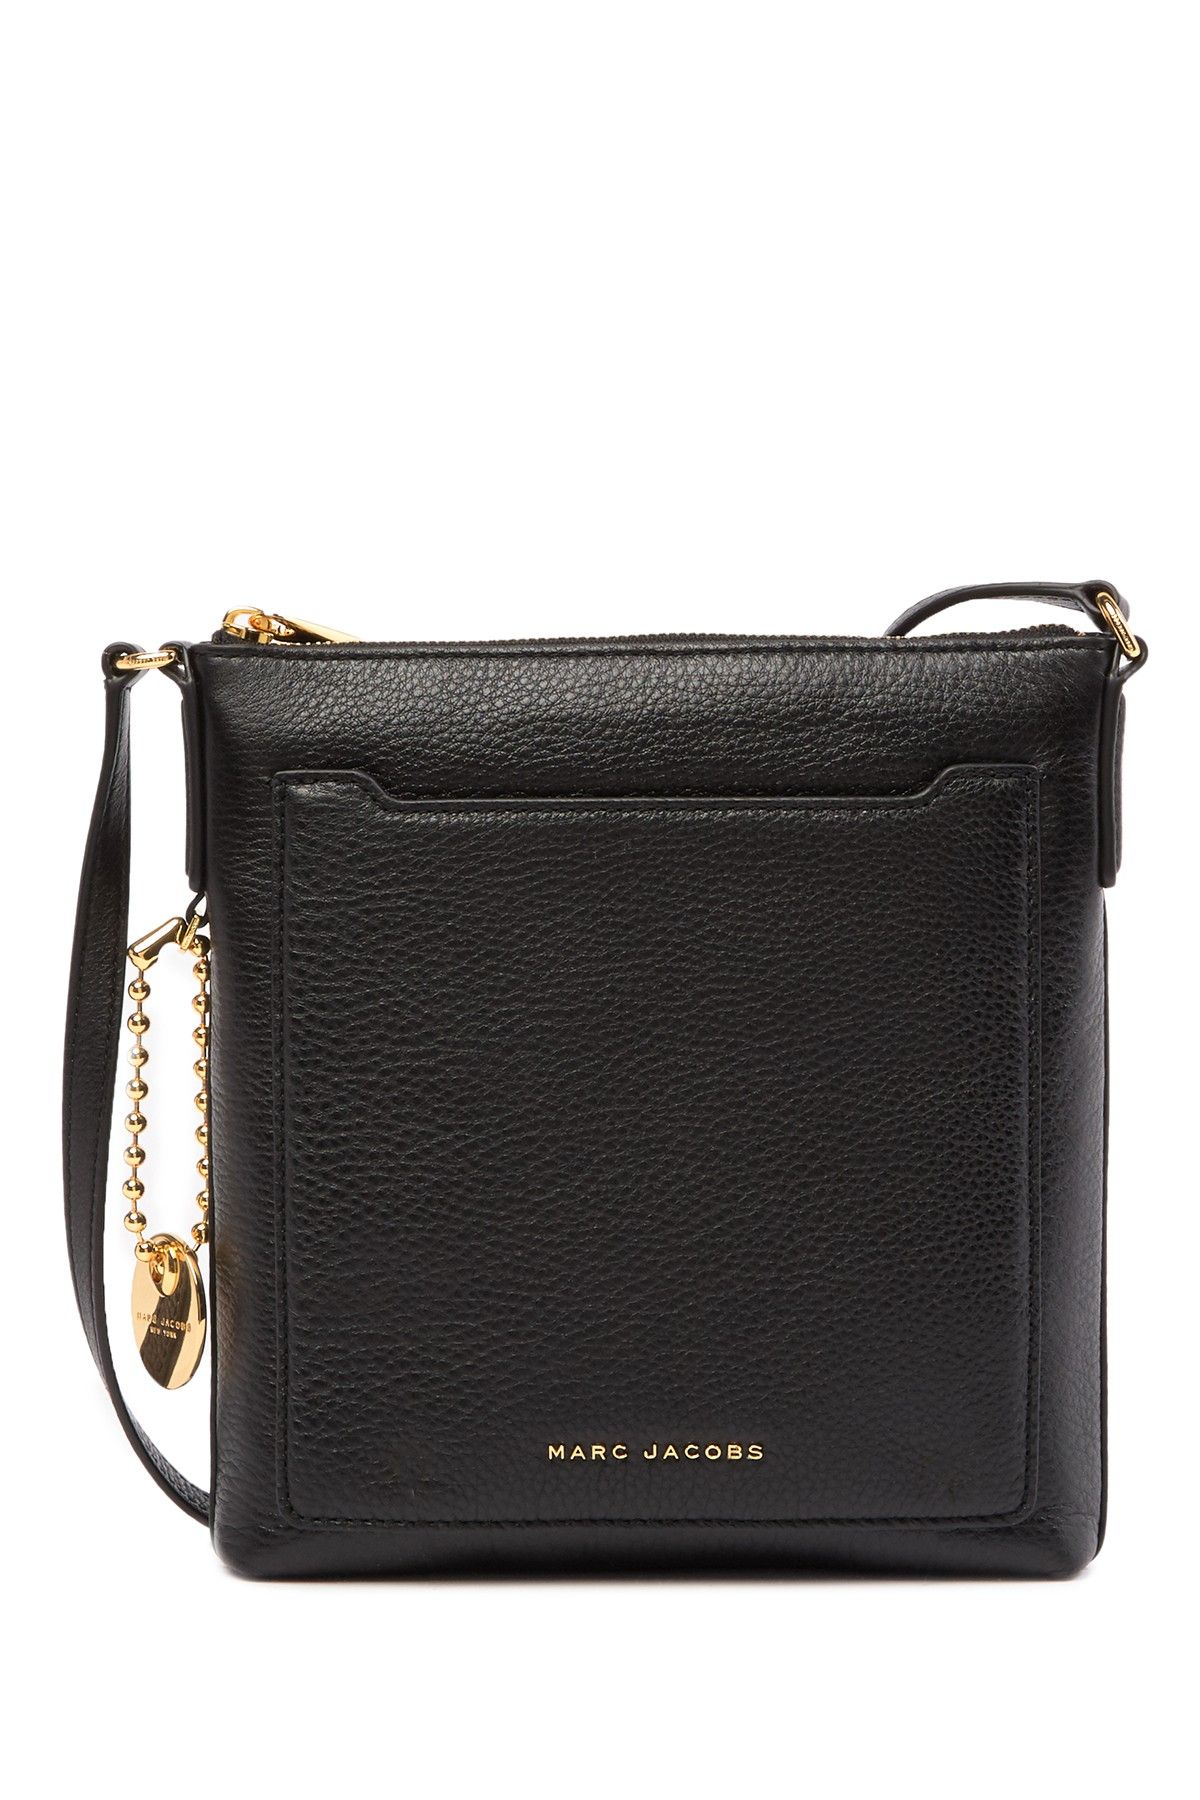 2e62e79b0335  139.97 - Marc Jacobs Tourist NS Crossbody Bag  COLOR   Black